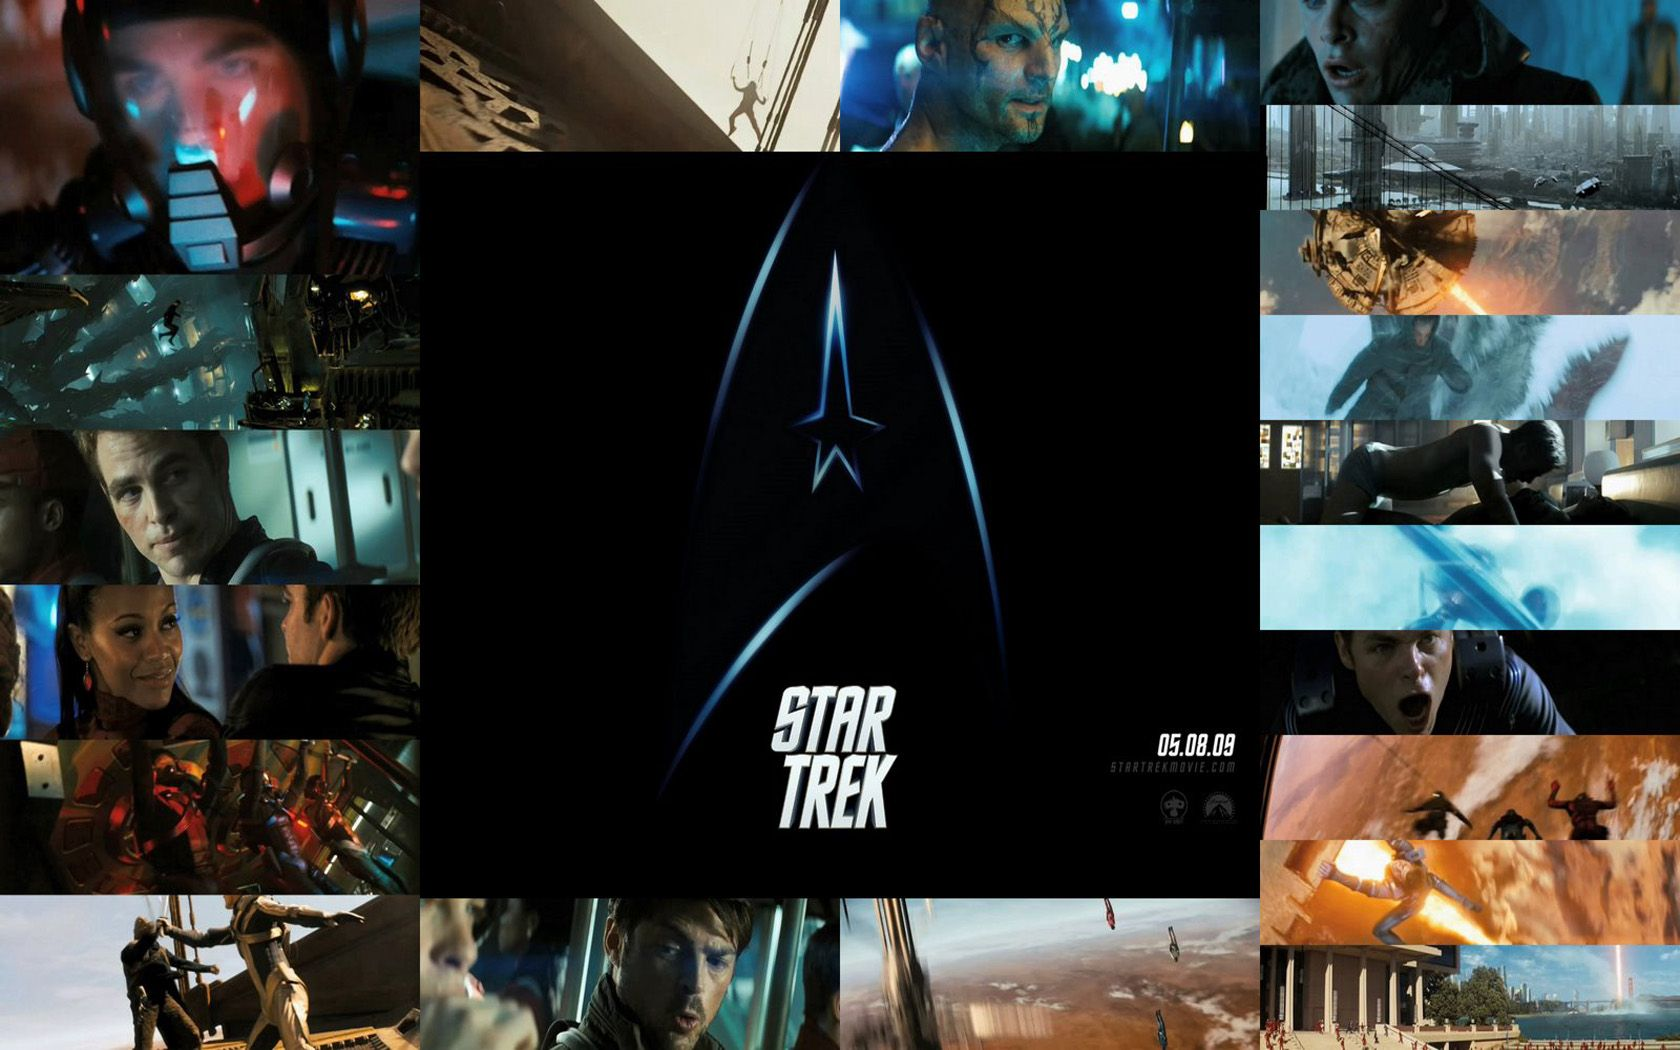 Star Trek Movie Screenshots Collage Wallpaper 1680x1050